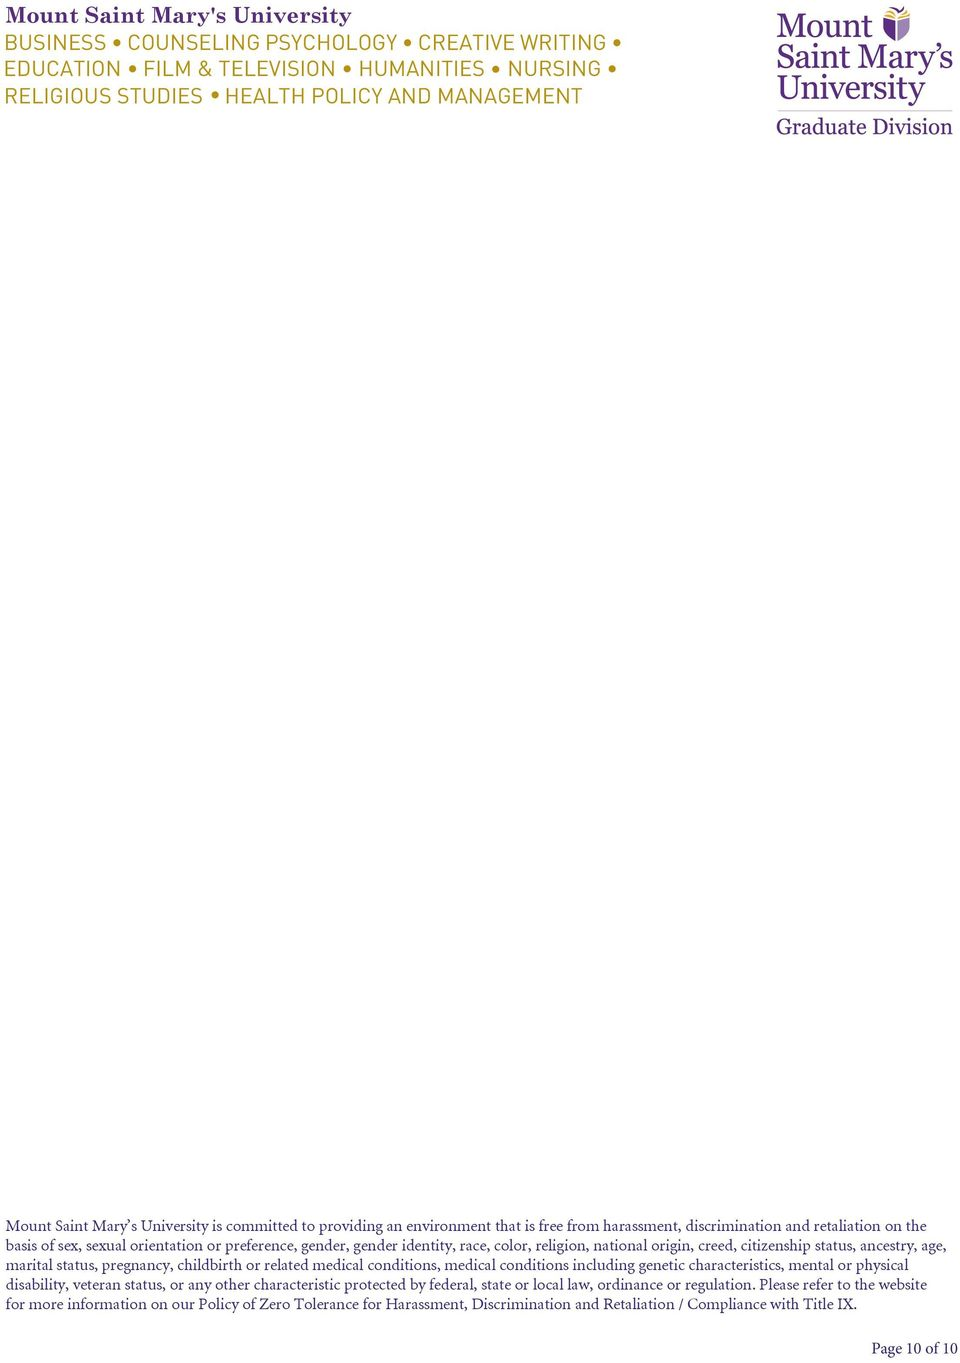 conditions, medical conditions including genetic characteristics, mental or physical disability, veteran status, or any other characteristic protected by federal, state or local